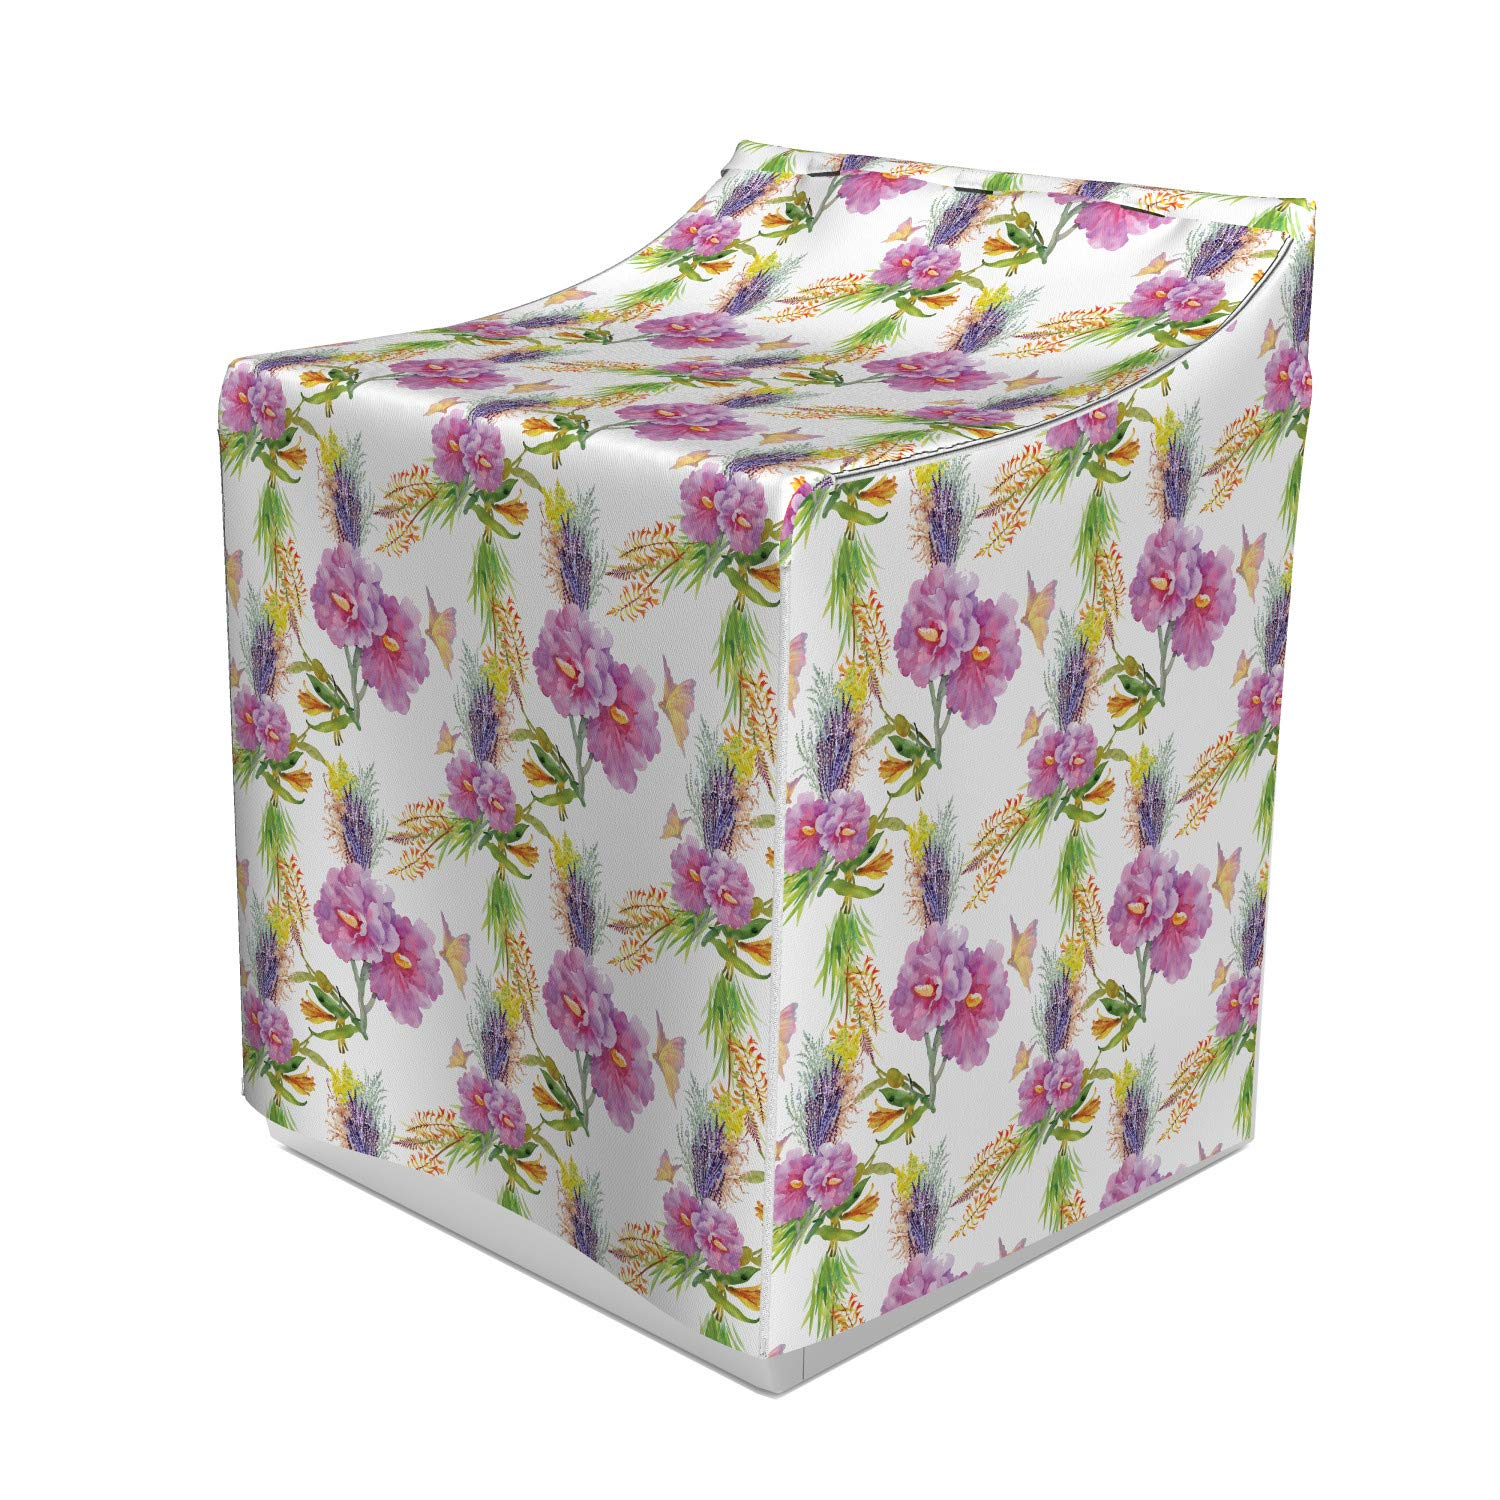 Lunarable Floral Washer Cover, Watercolor Illustration of Romantic Flower Bouquet of Lilac Lavenders and Peonies, Suitable for Dryer and Washing Machine, 29'' x 28'' x 40'', Multicolor